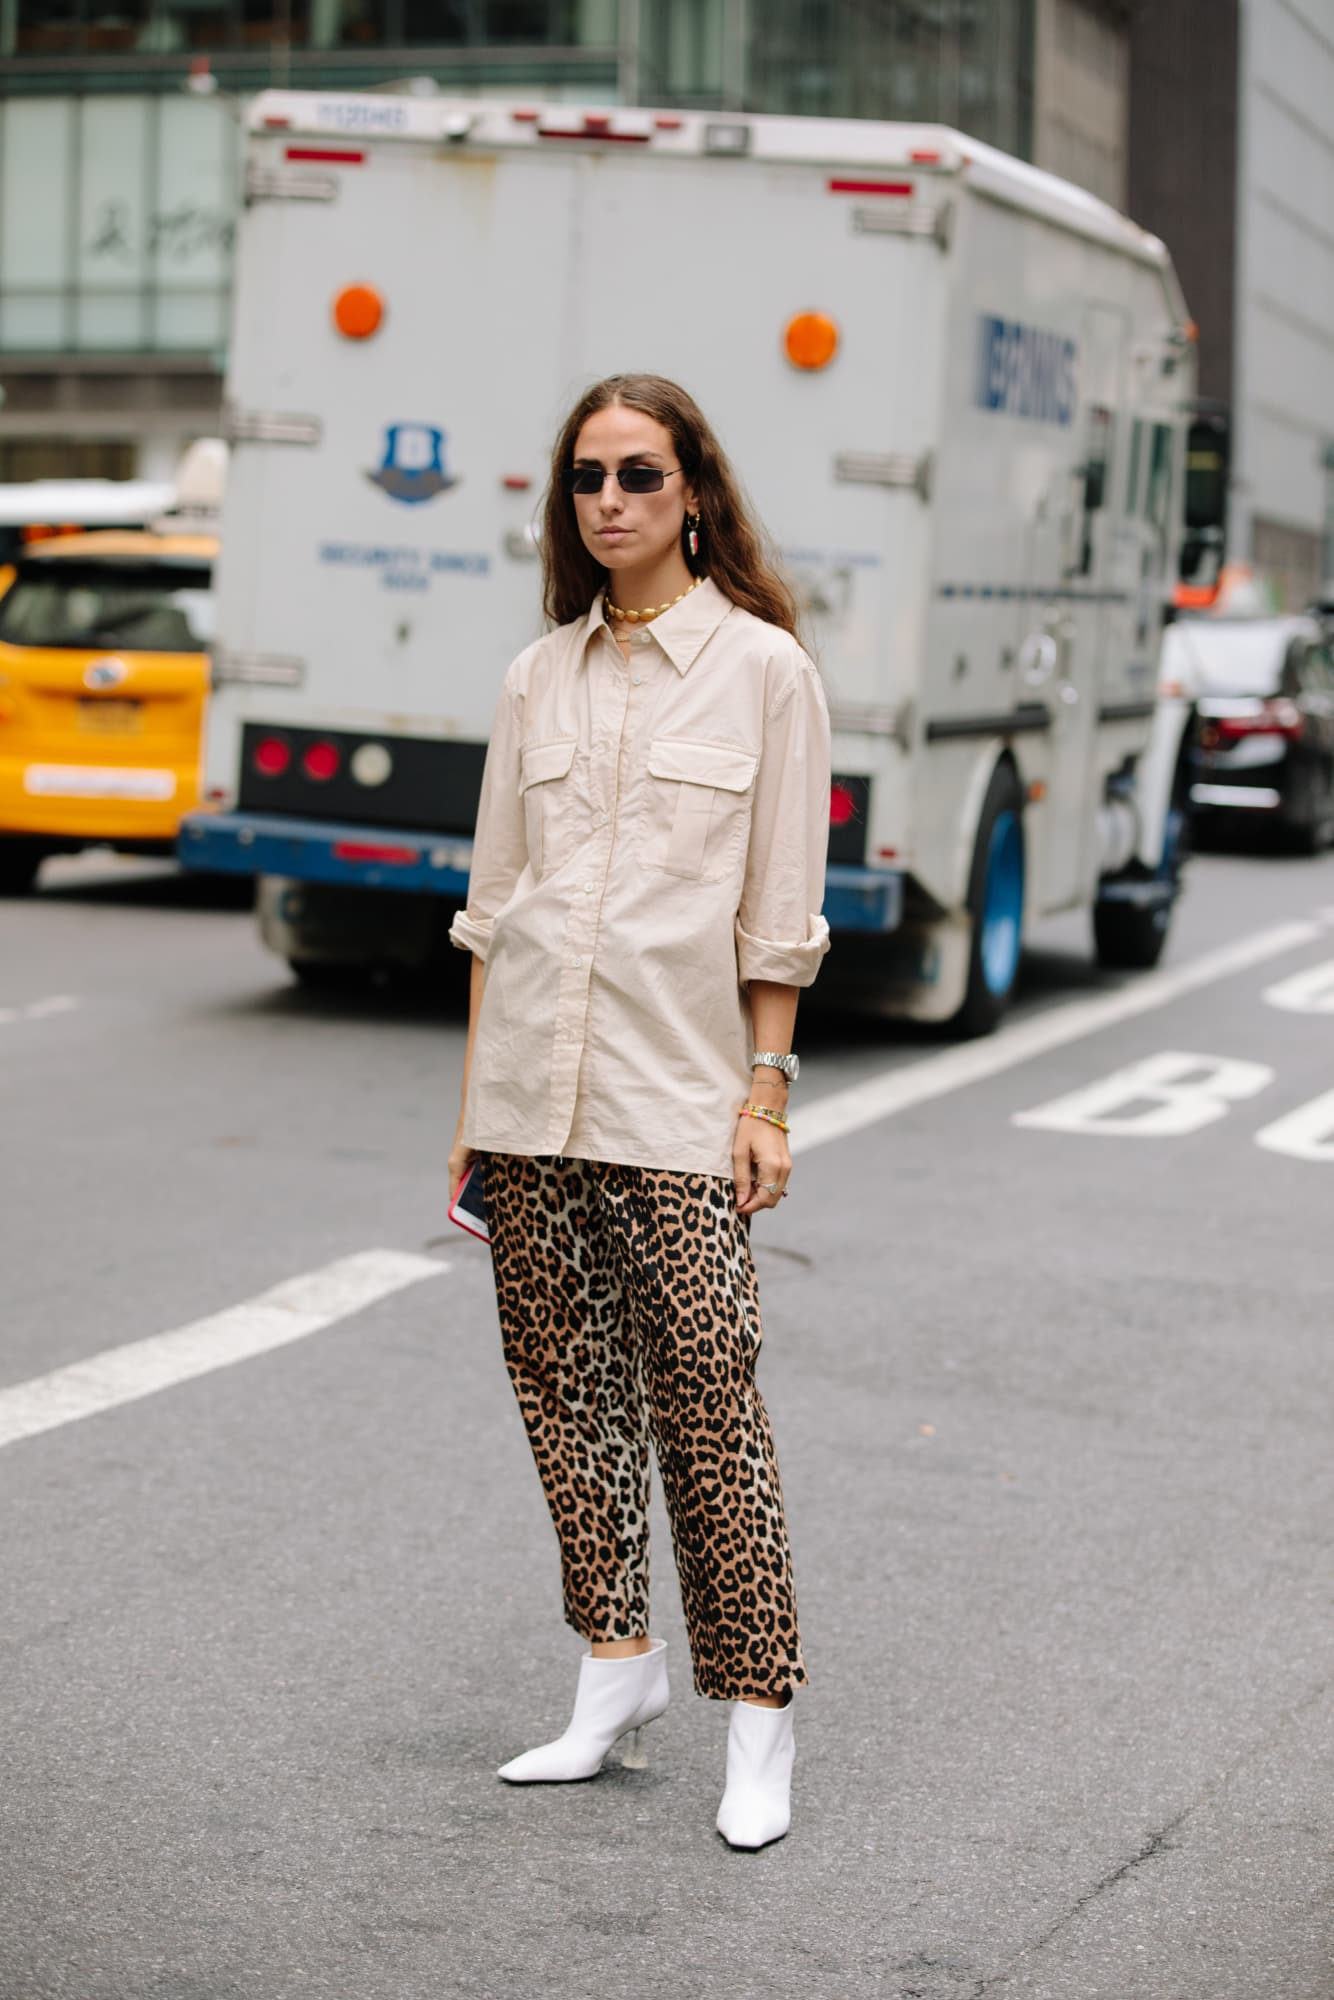 Spring 2019 Trend #1 Neutral Safari